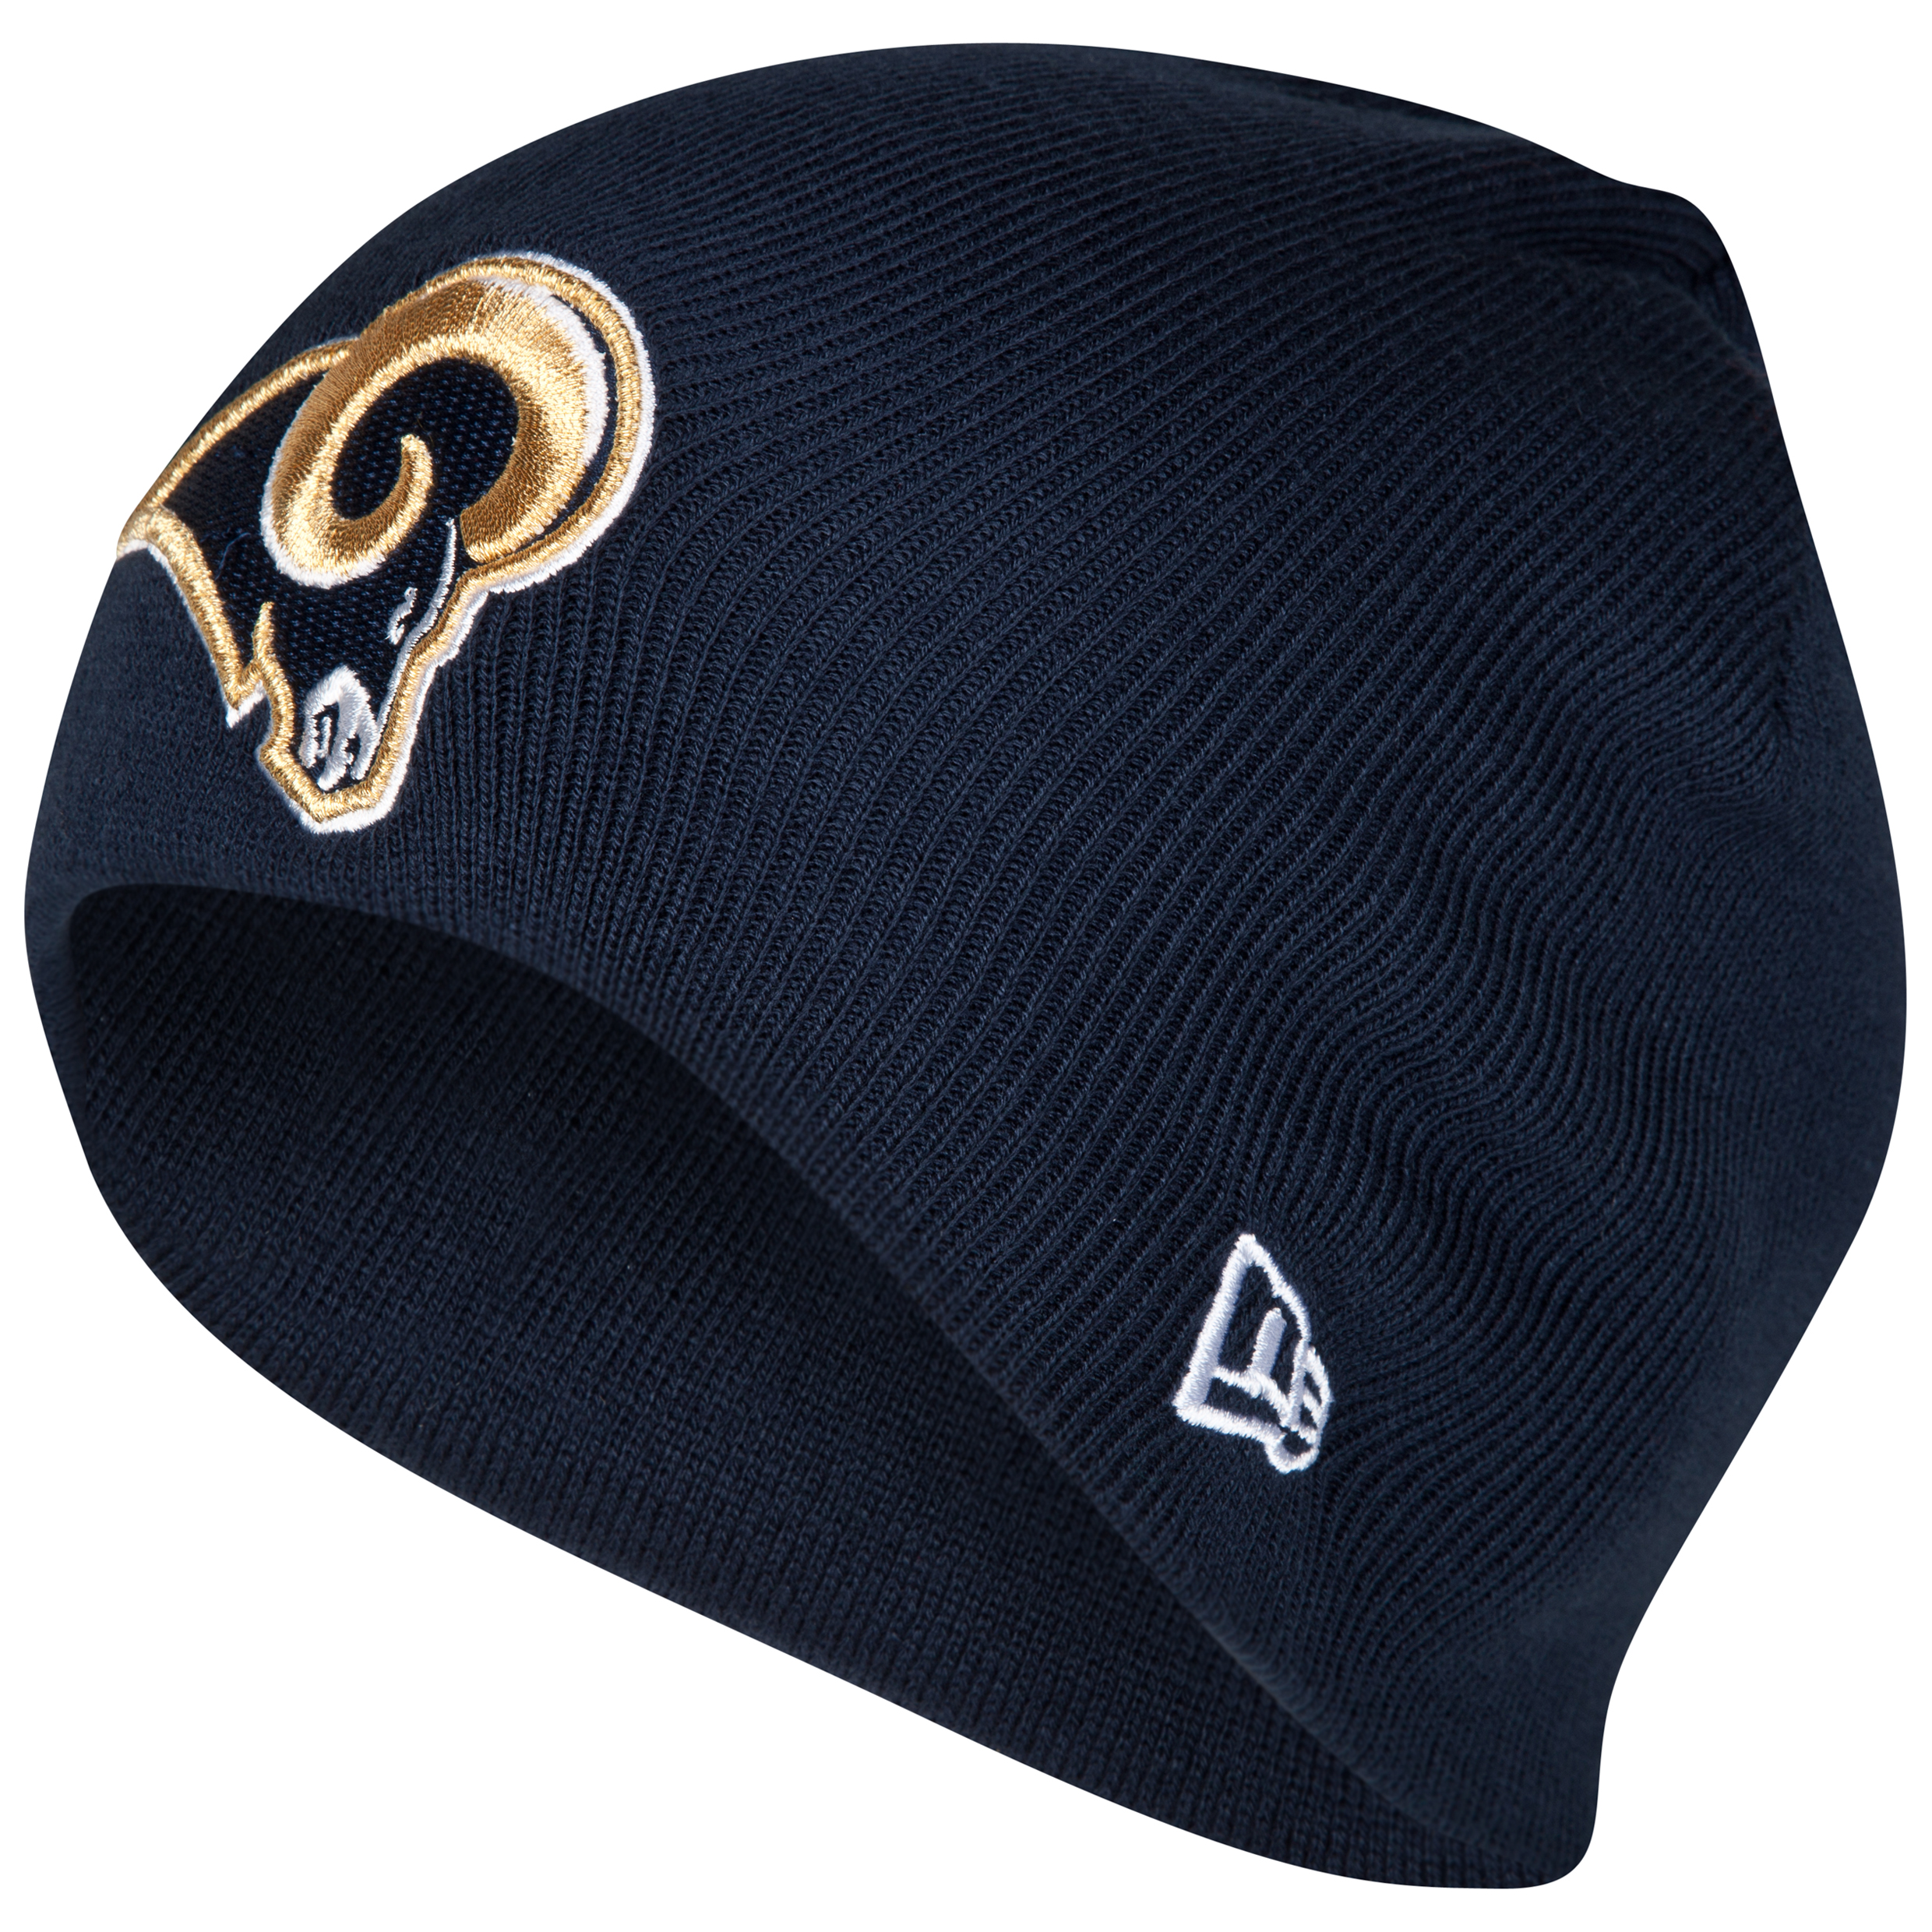 St Louis Rams Basic Beanie